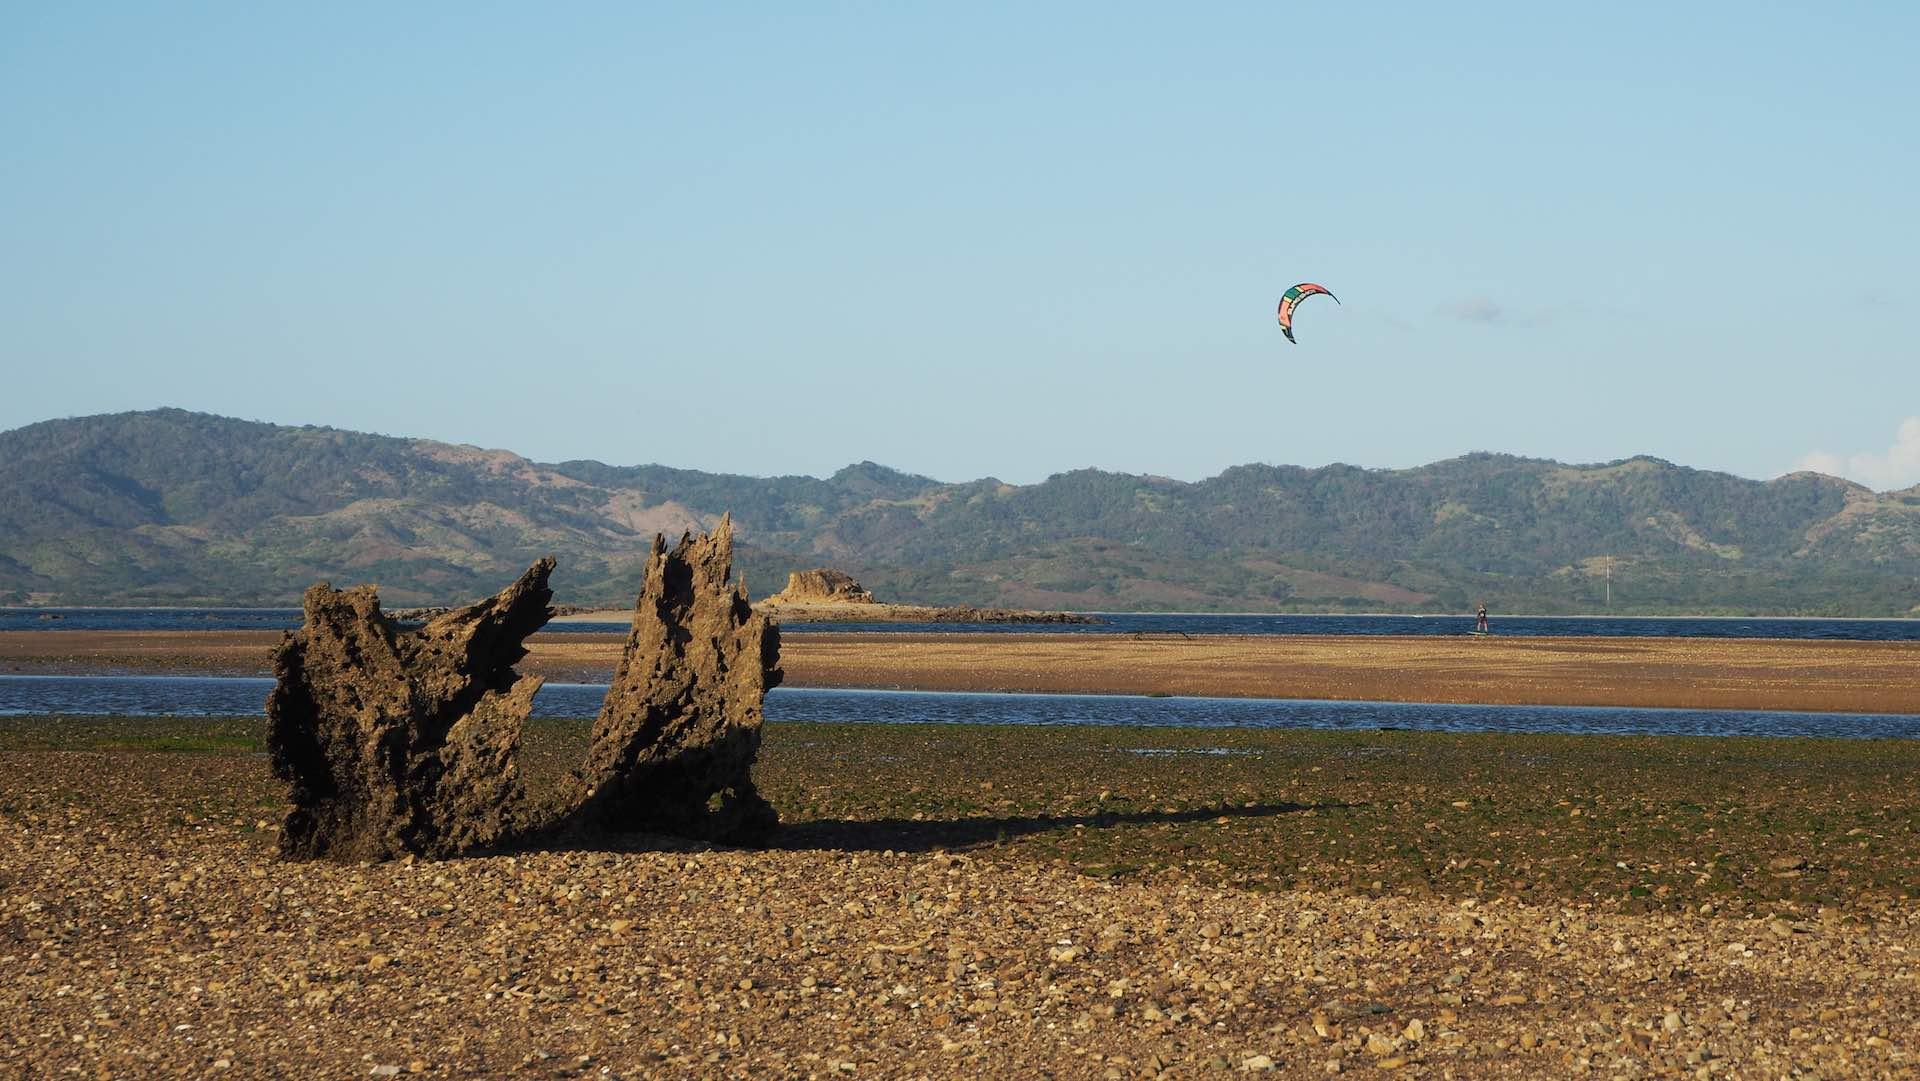 Bahia de Salinas, as well perfect for foil kitesurfing